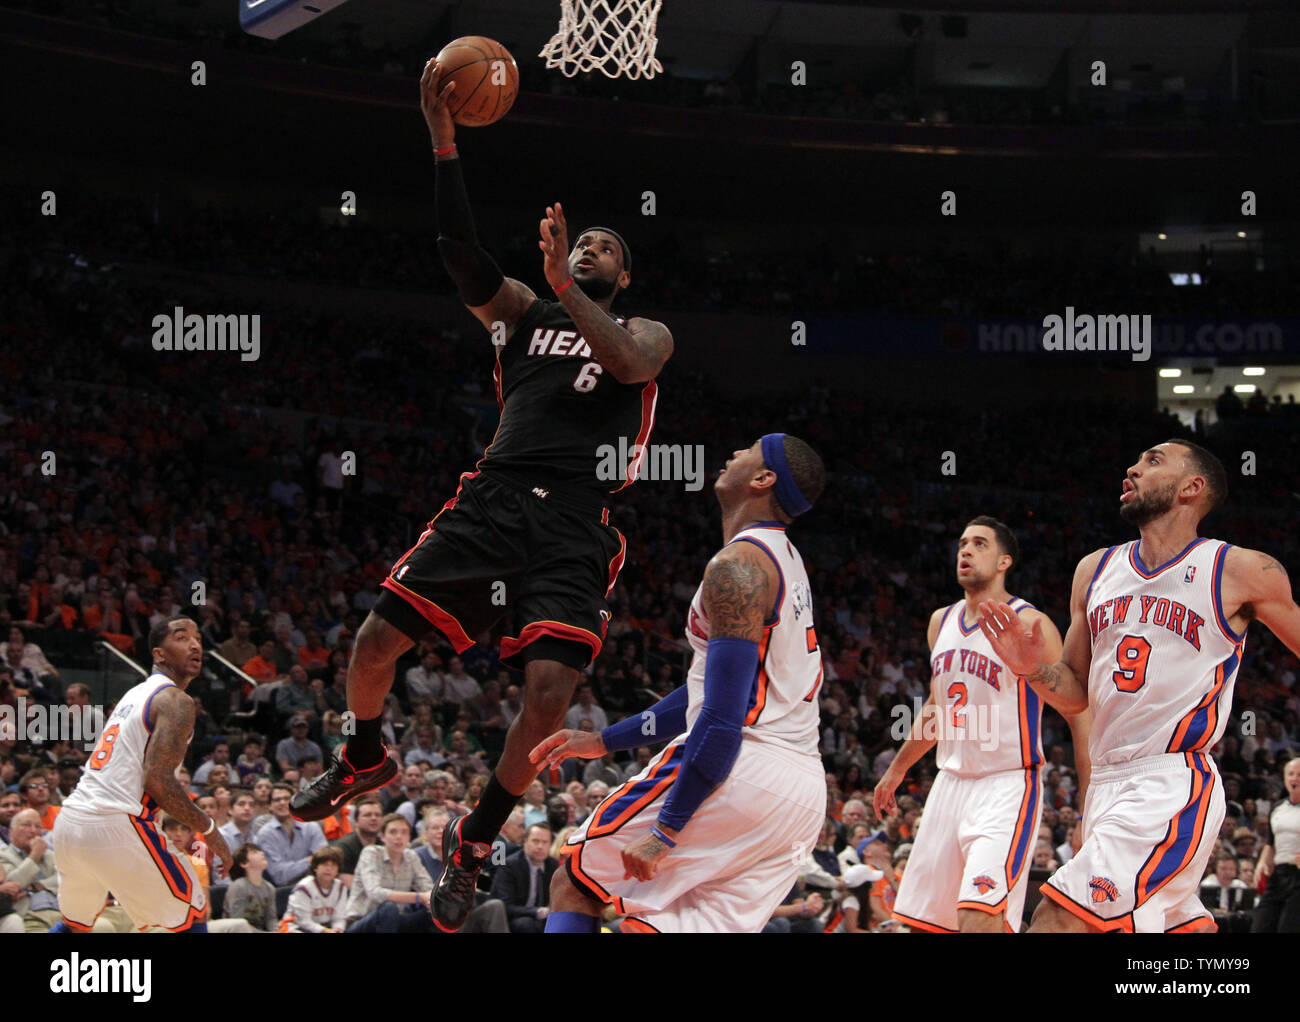 0eb2ac315c44 New York Knicks Carmelo Anthony watches Miami Heat Lebron James drive to  the basket in the